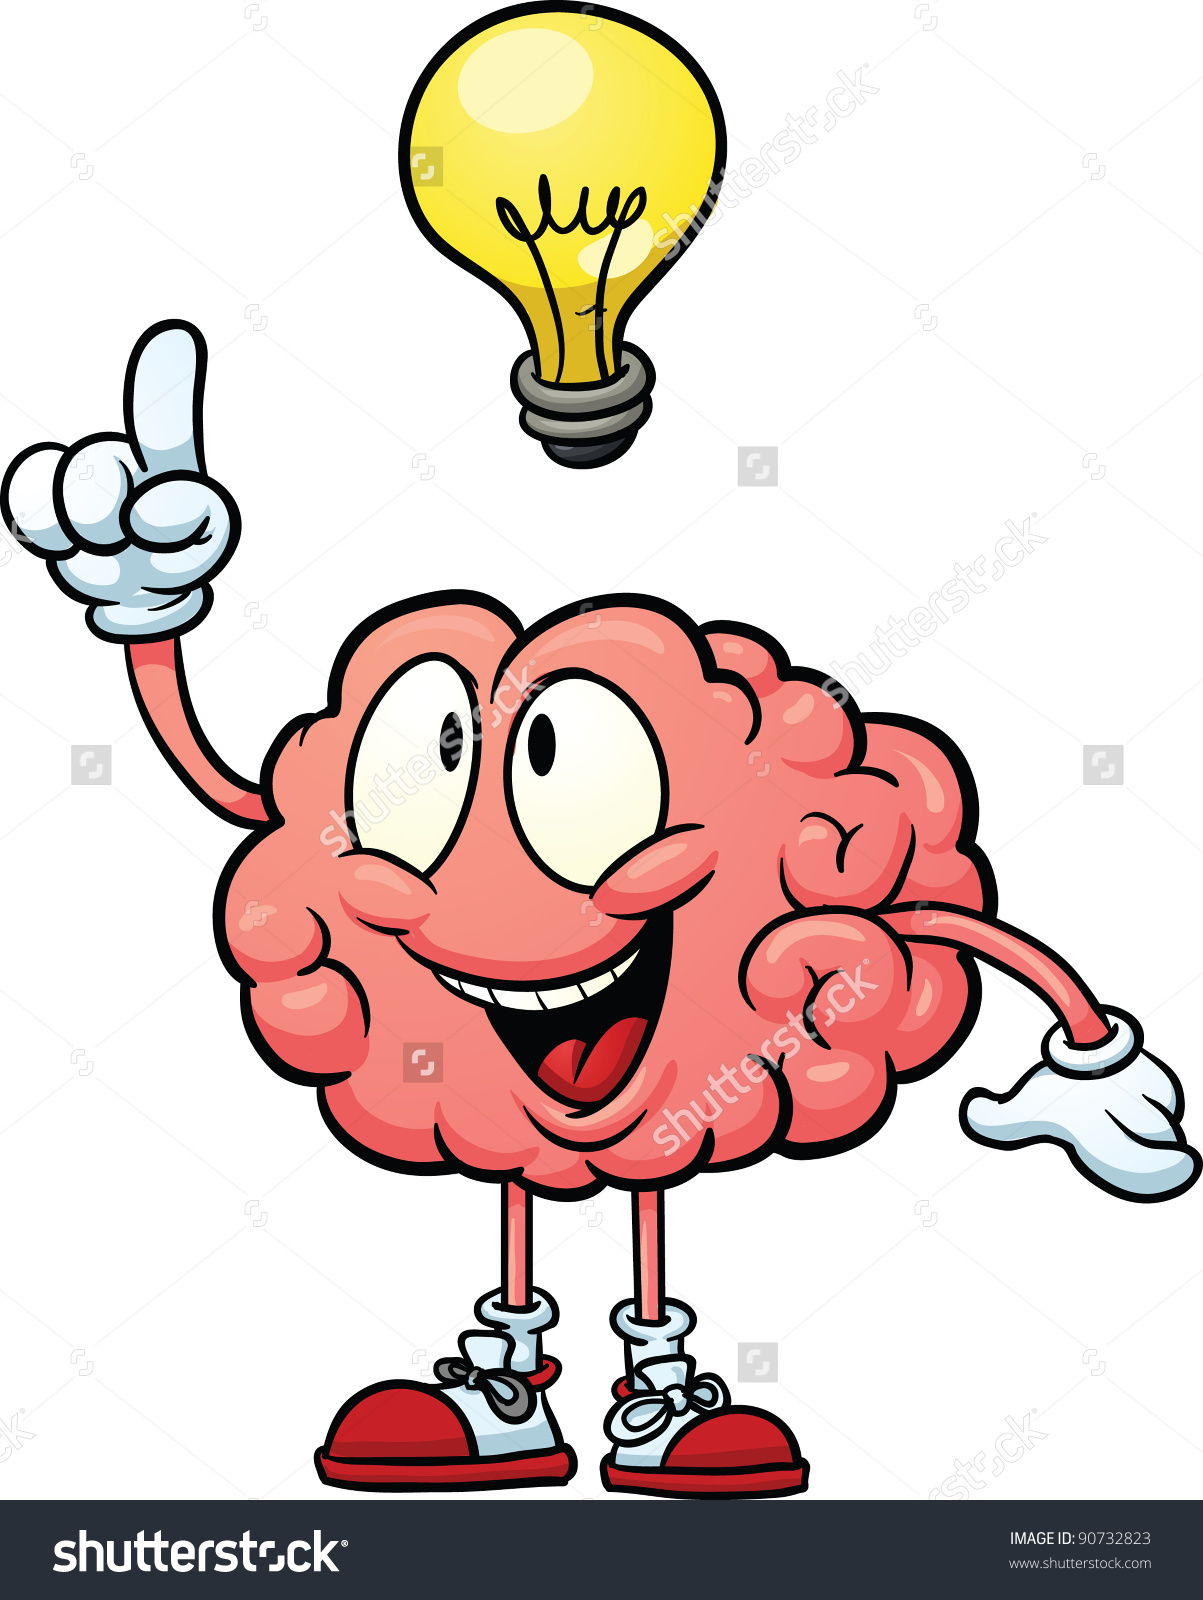 Brain cartoon clipart png transparent library Thinking Brain Clipart | Free download best Thinking Brain Clipart ... png transparent library